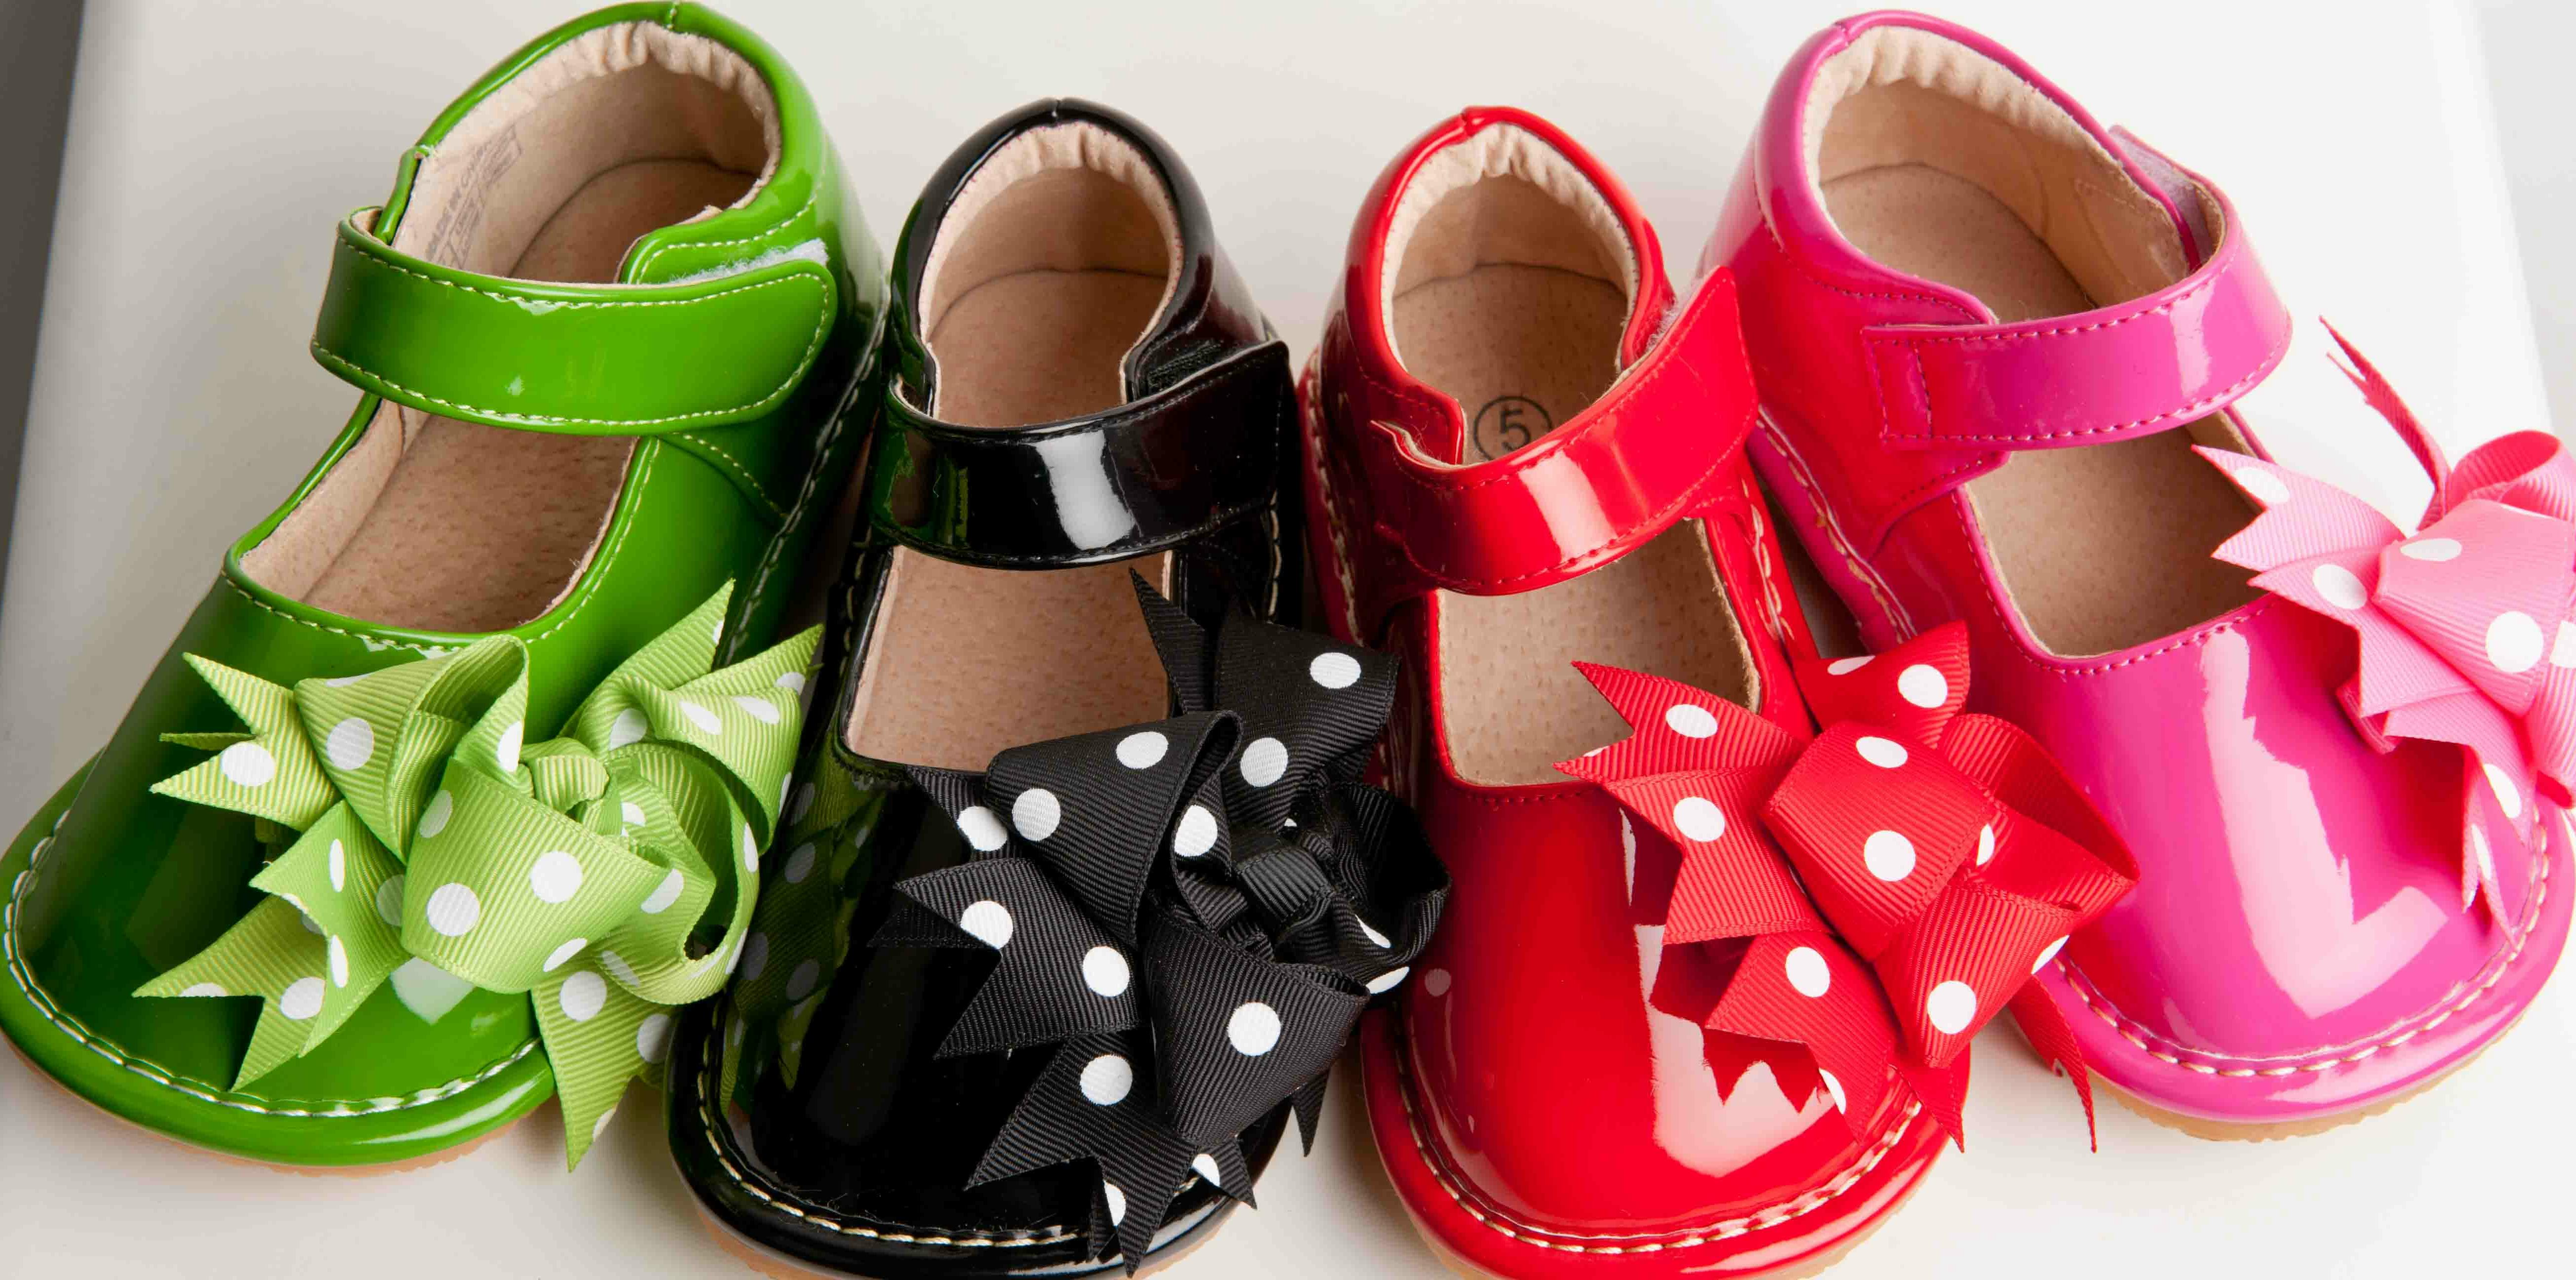 Girl Polka Dot Solid Patent Clip On Squeaky Shoes Hot Pink, Green ...